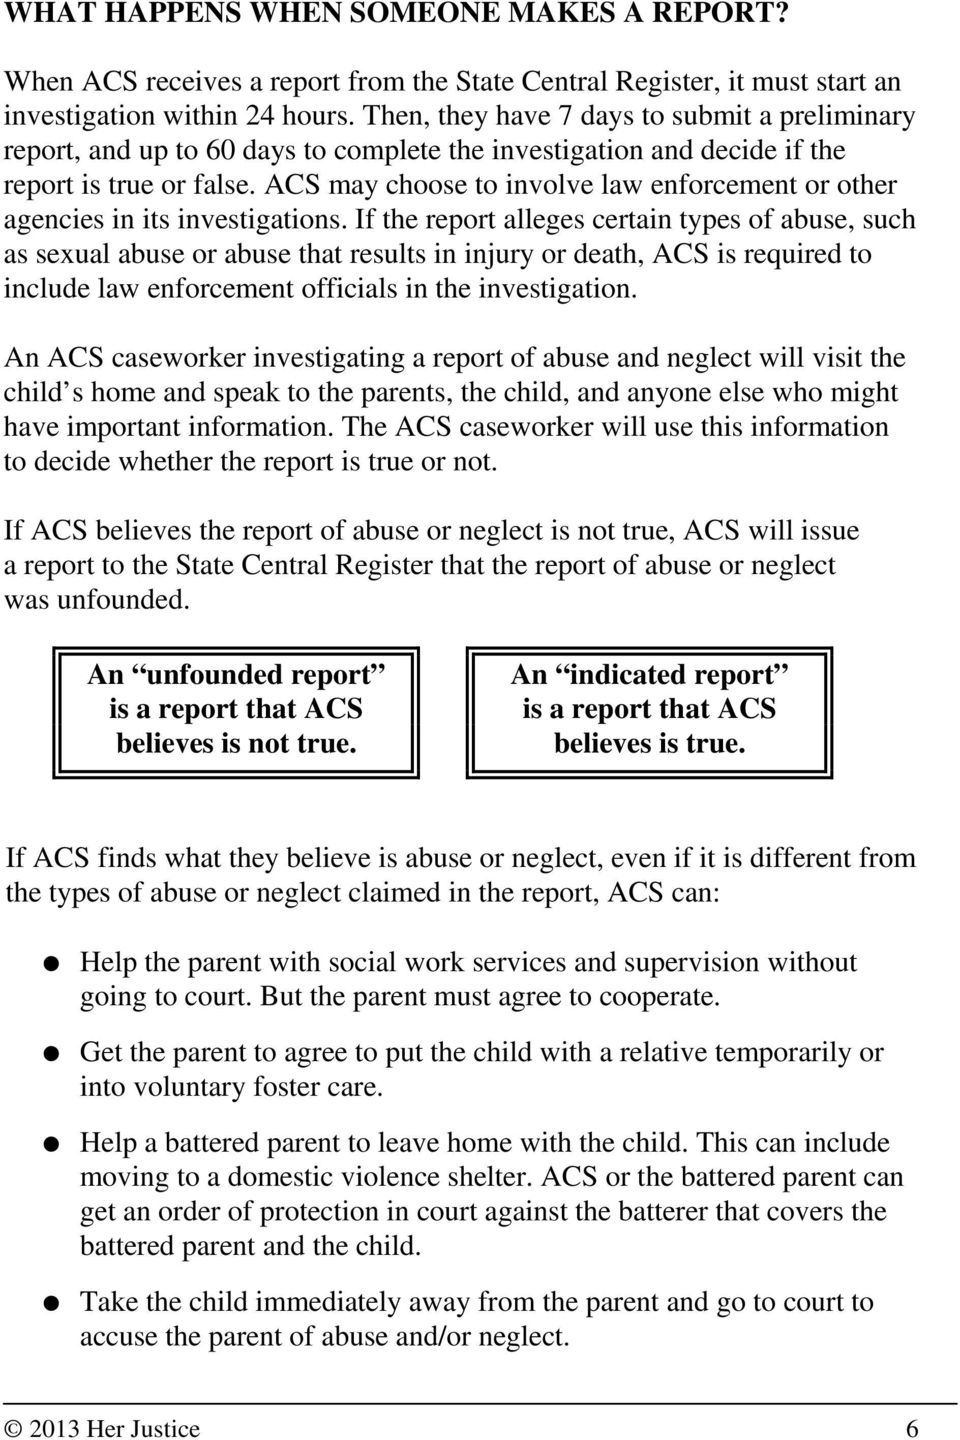 ACS may choose to involve law enforcement or other agencies in its investigations.